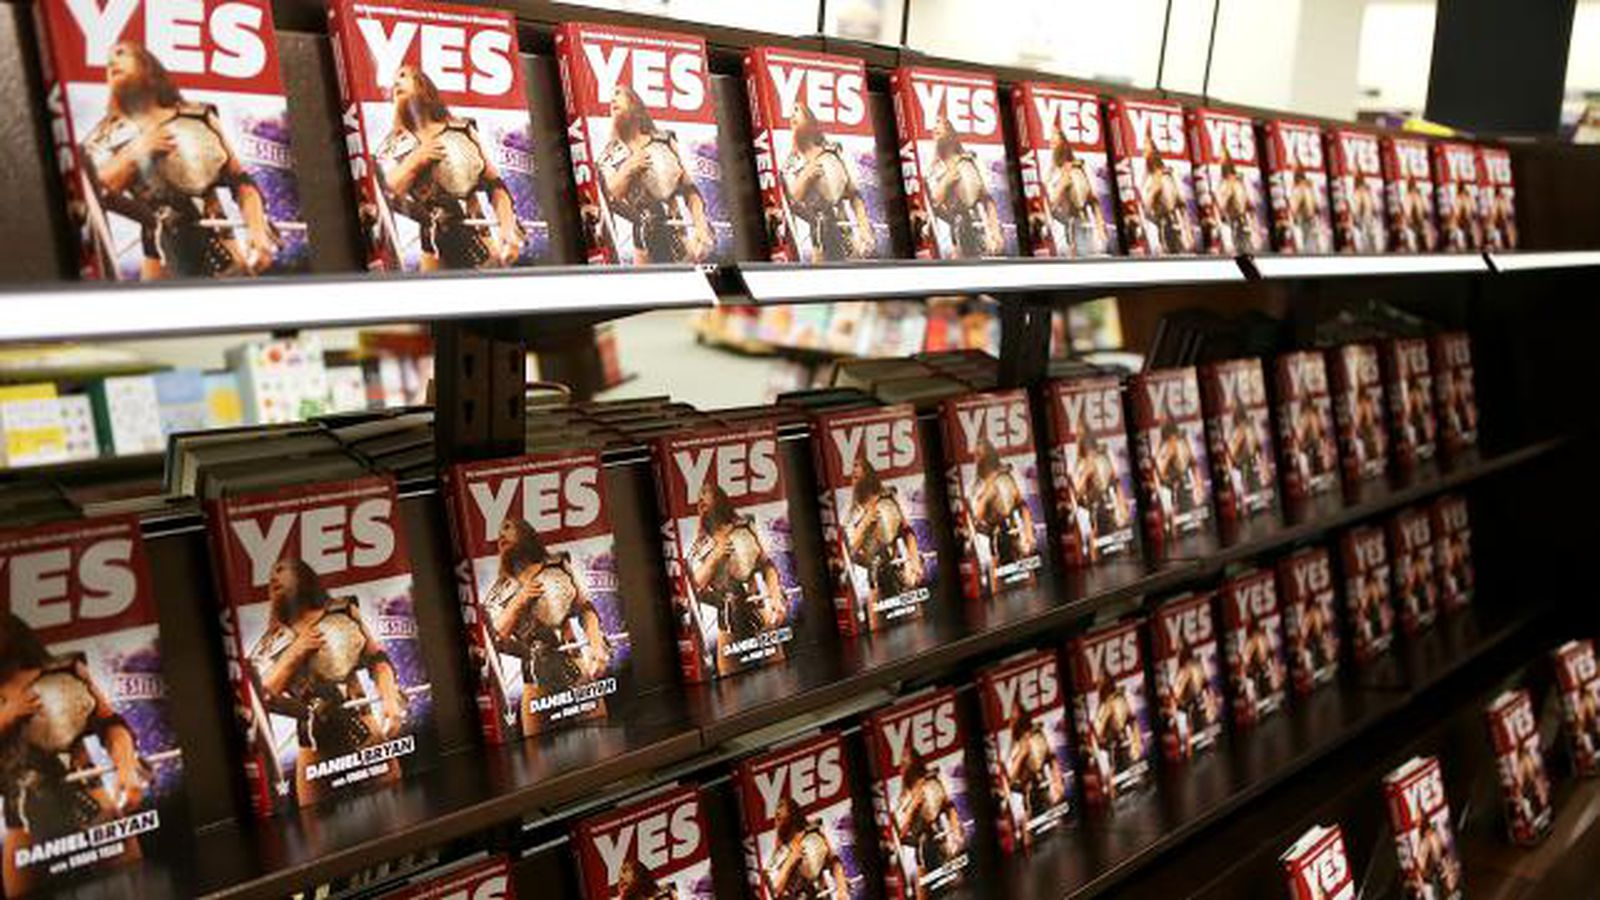 Daniel Bryan: New York Times best-selling author - Cageside Seats